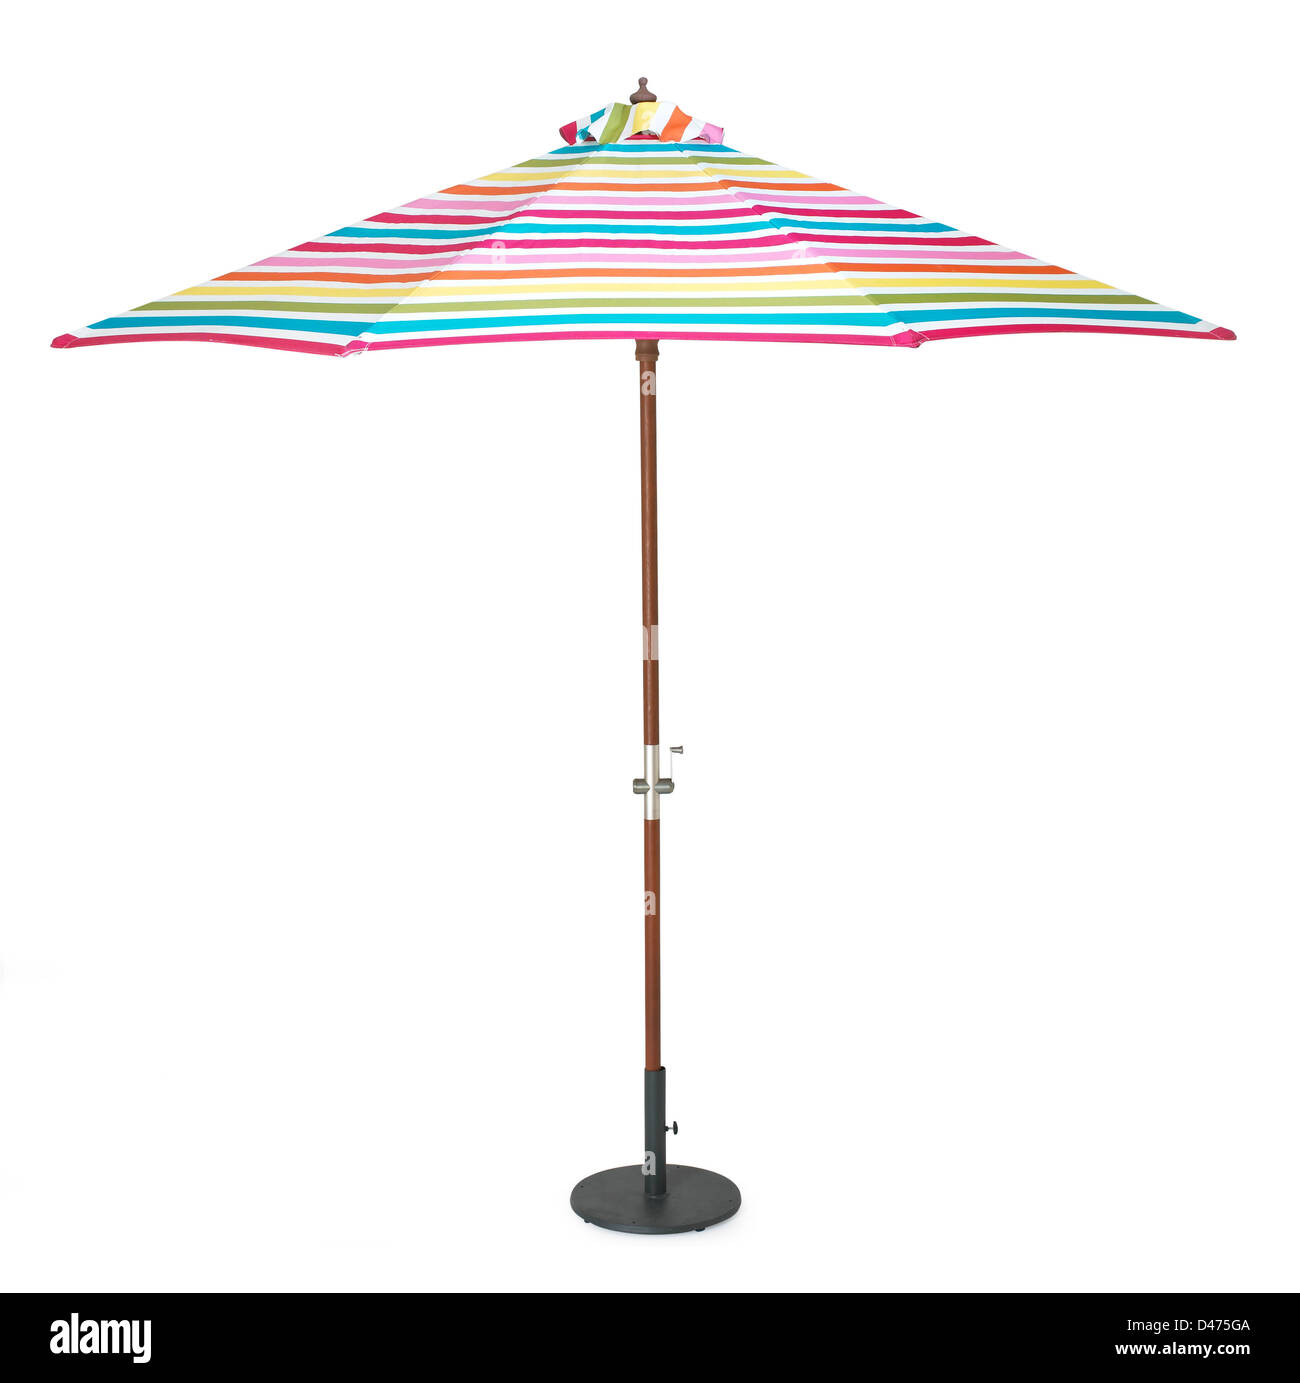 Colouful Umbrella Cut Out White Background